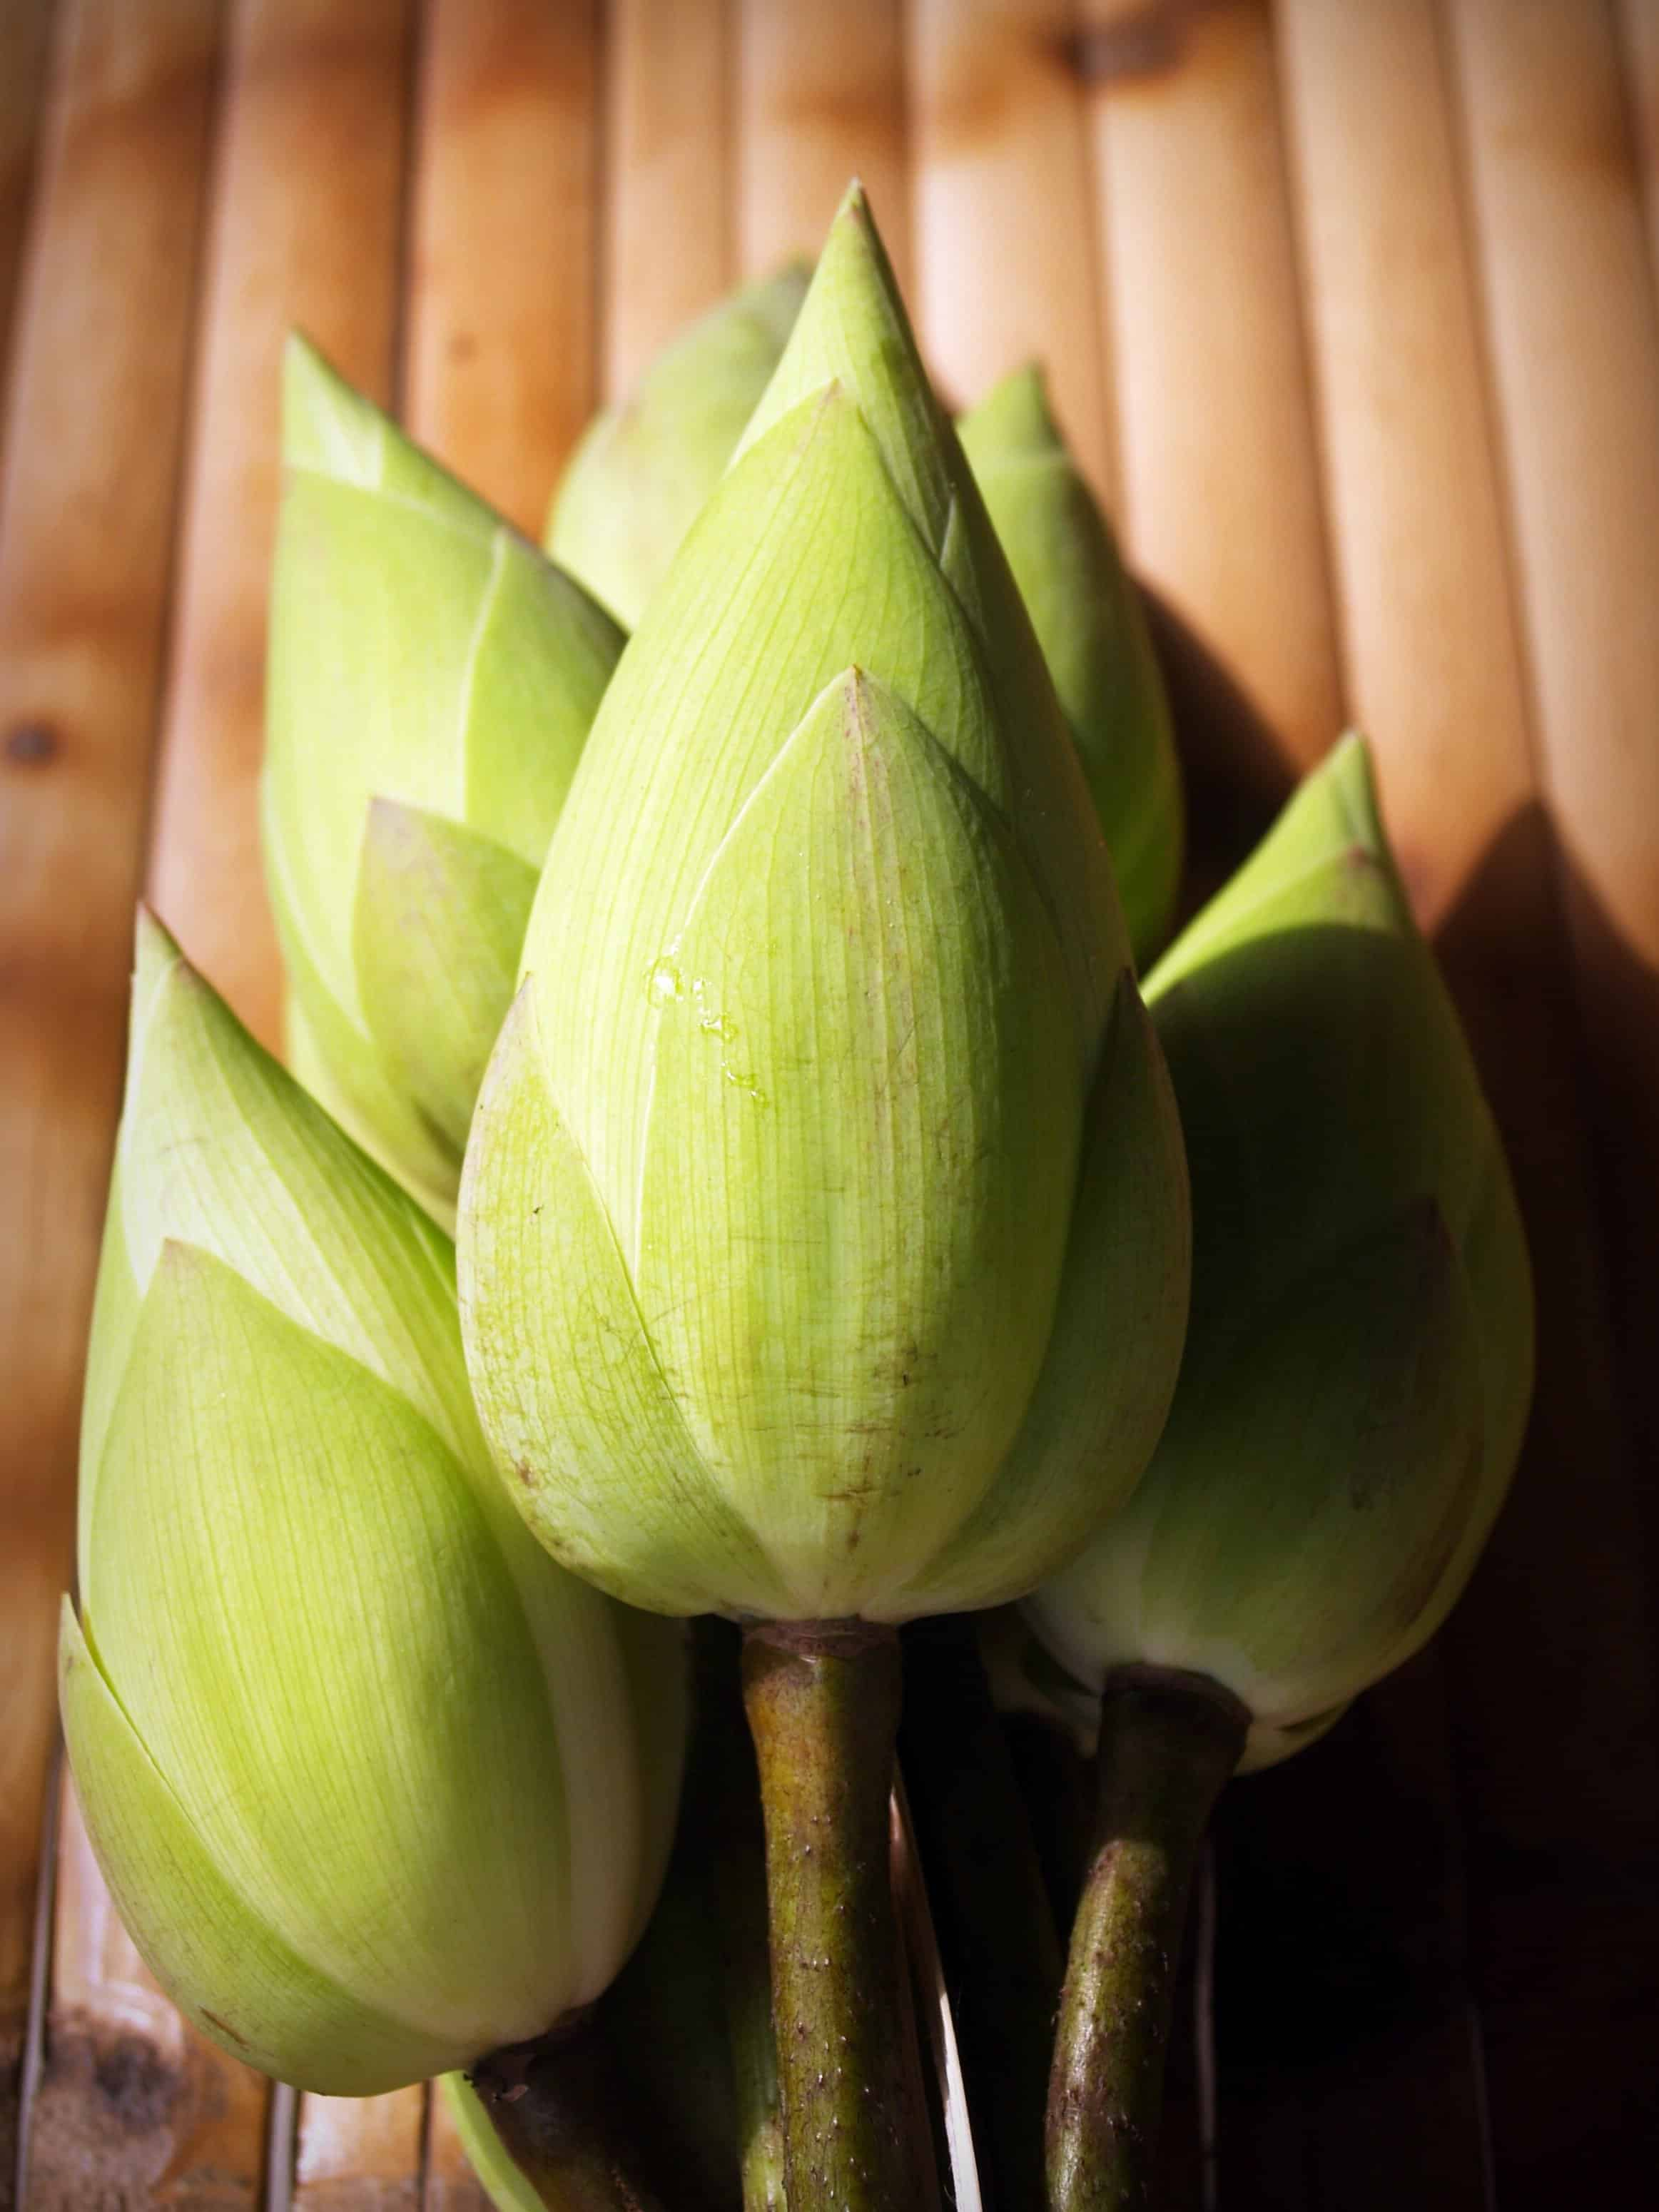 Free picture leaf nature flower plant food waterlily leaf nature flower plant food waterlily izmirmasajfo